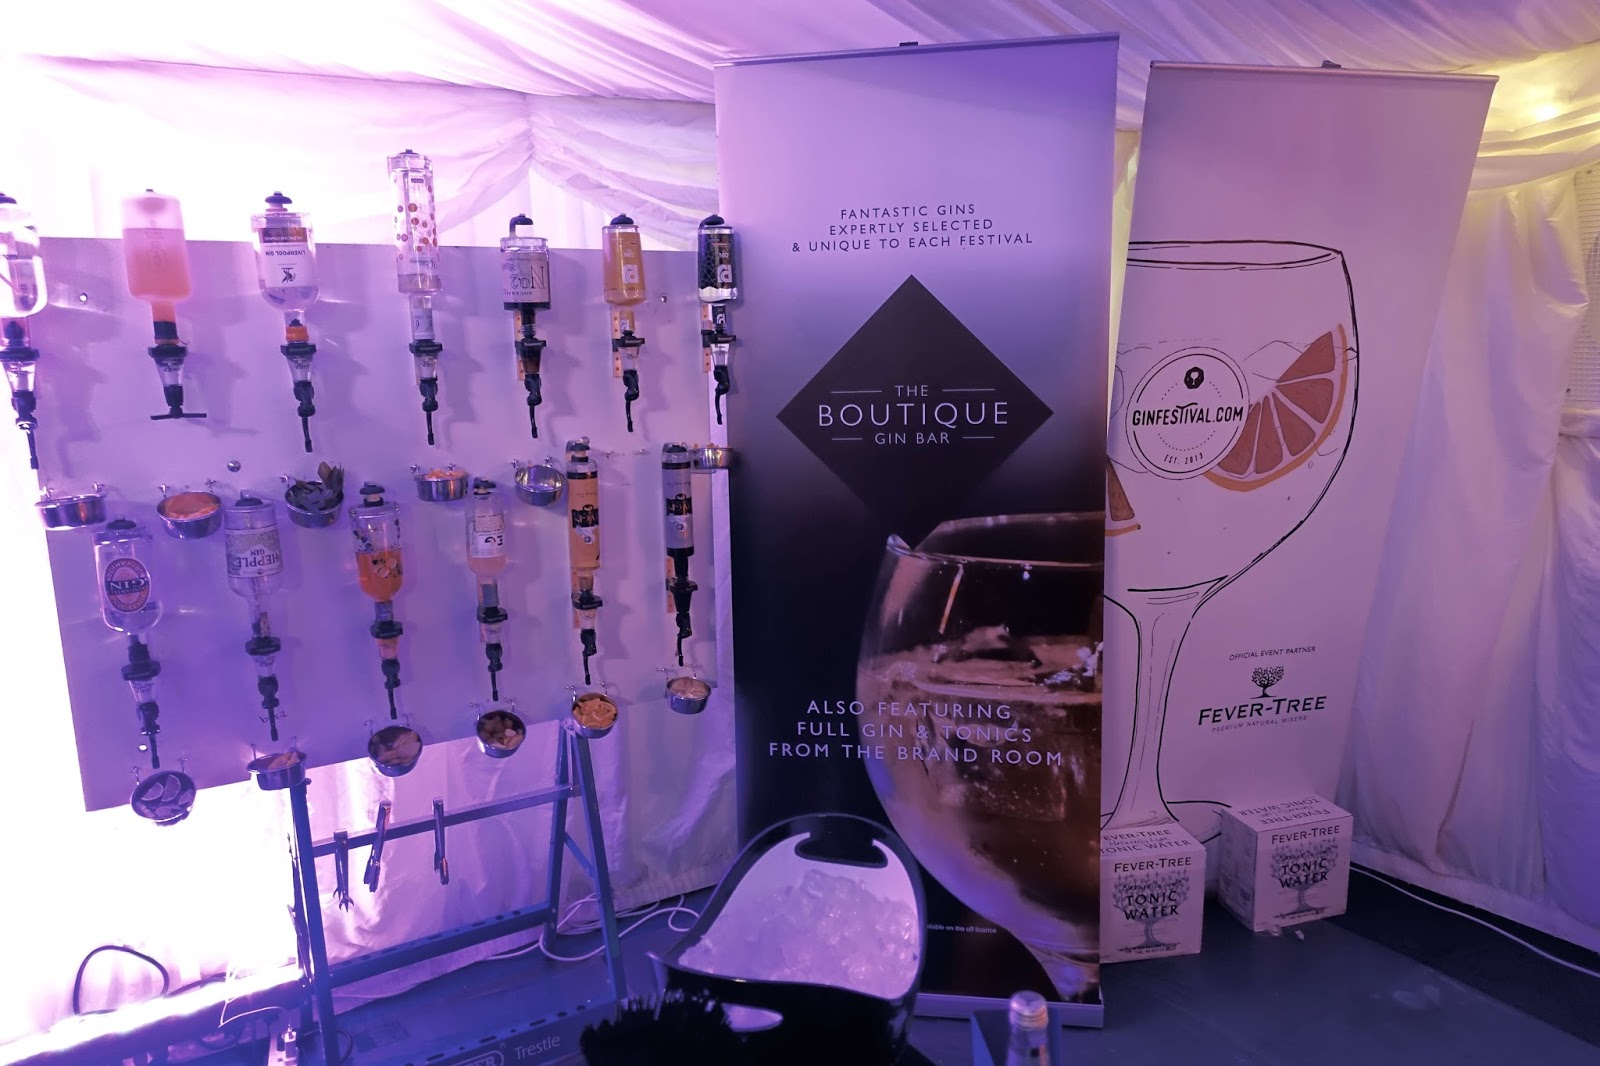 The boutique gin bar at the gin festival